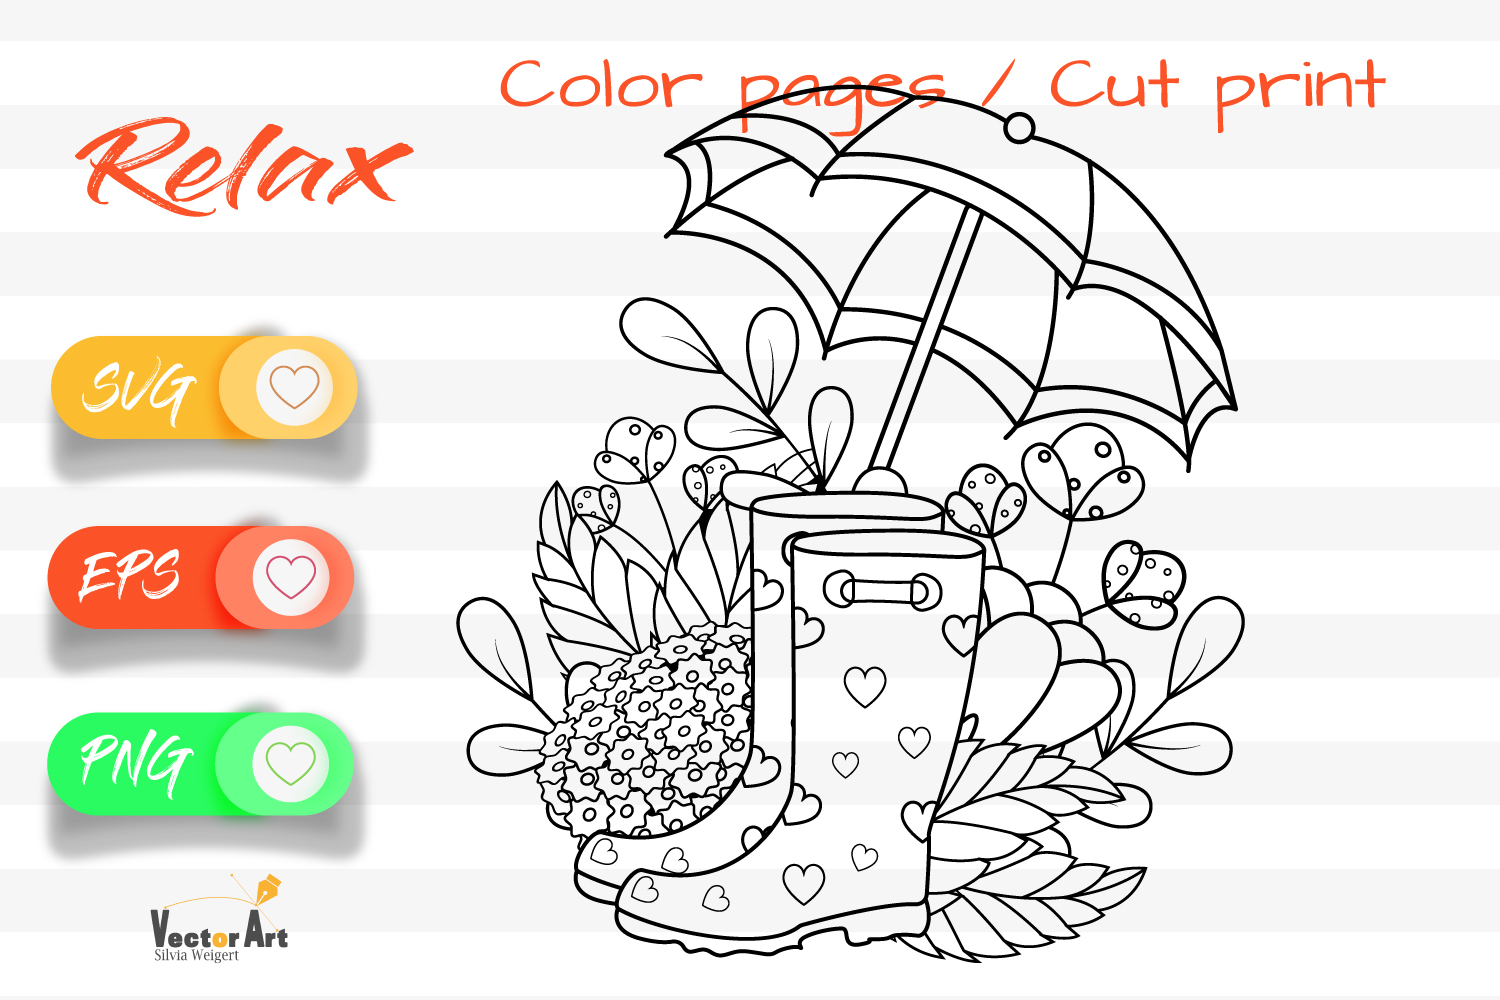 Rubber Boots - Cut File and Coloring Page example image 1